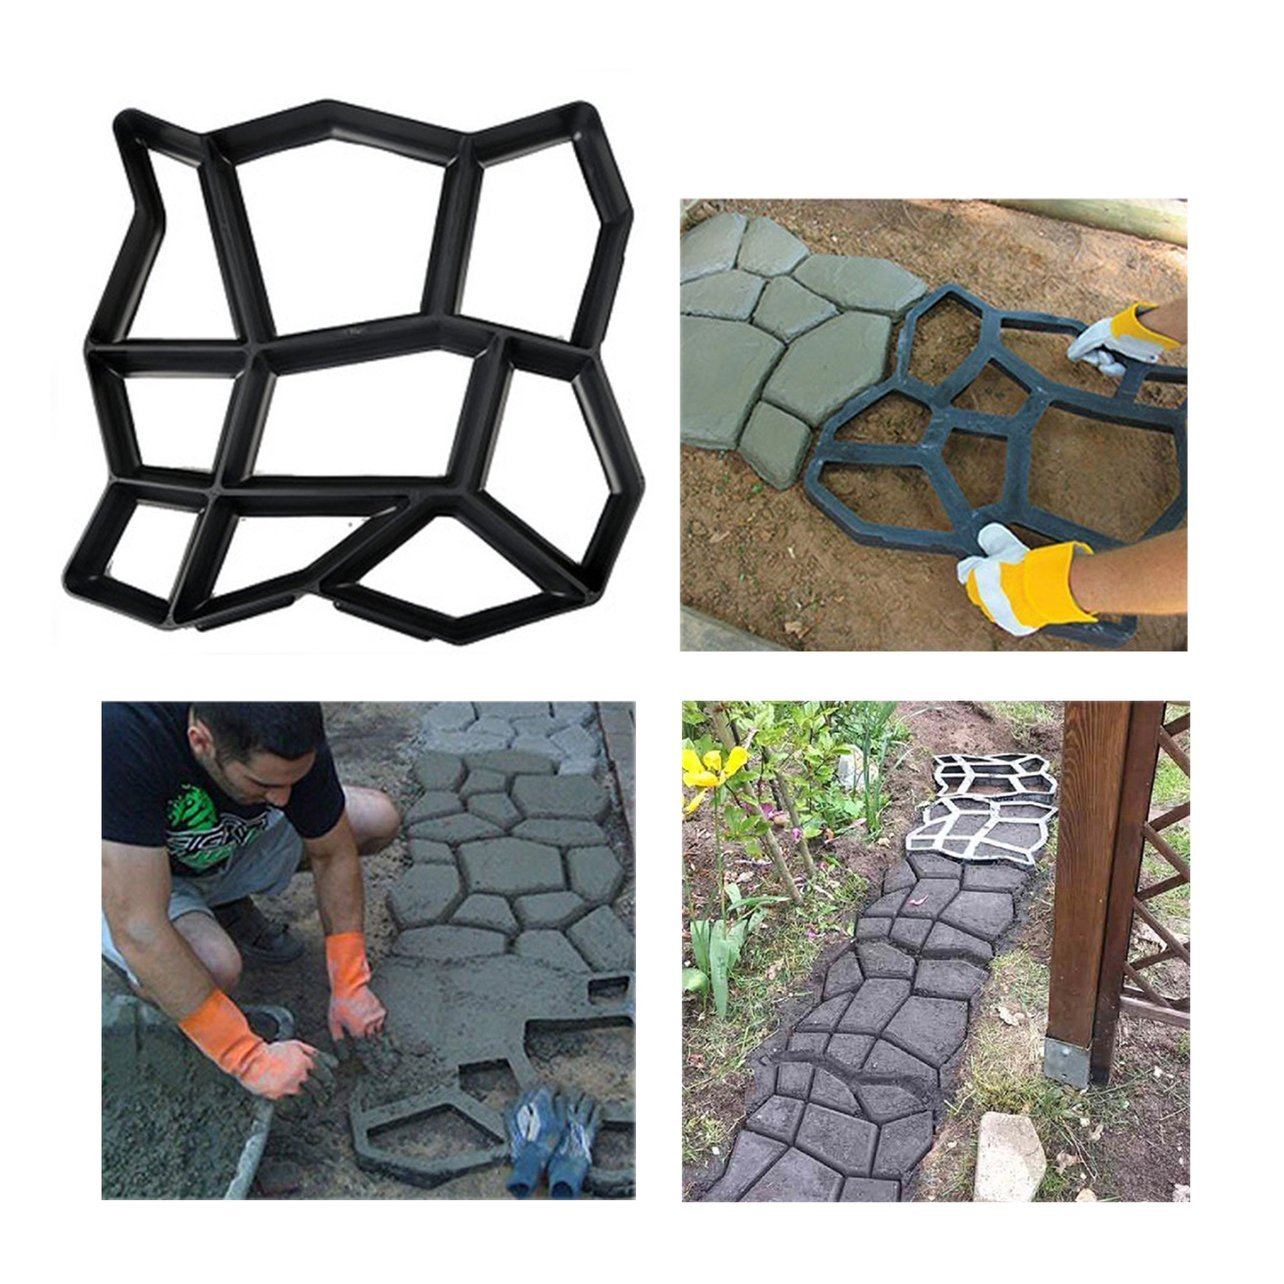 3 Pack Irregular DIY Pavement Mold Walk Maker Path Maker Brick Mold Concrete Form Pathmate Stepping Stone Molds for Concrete Mould Reusable for Garden, Court Yards, Patios and Walks, 17 x 17in Ginbel Direct